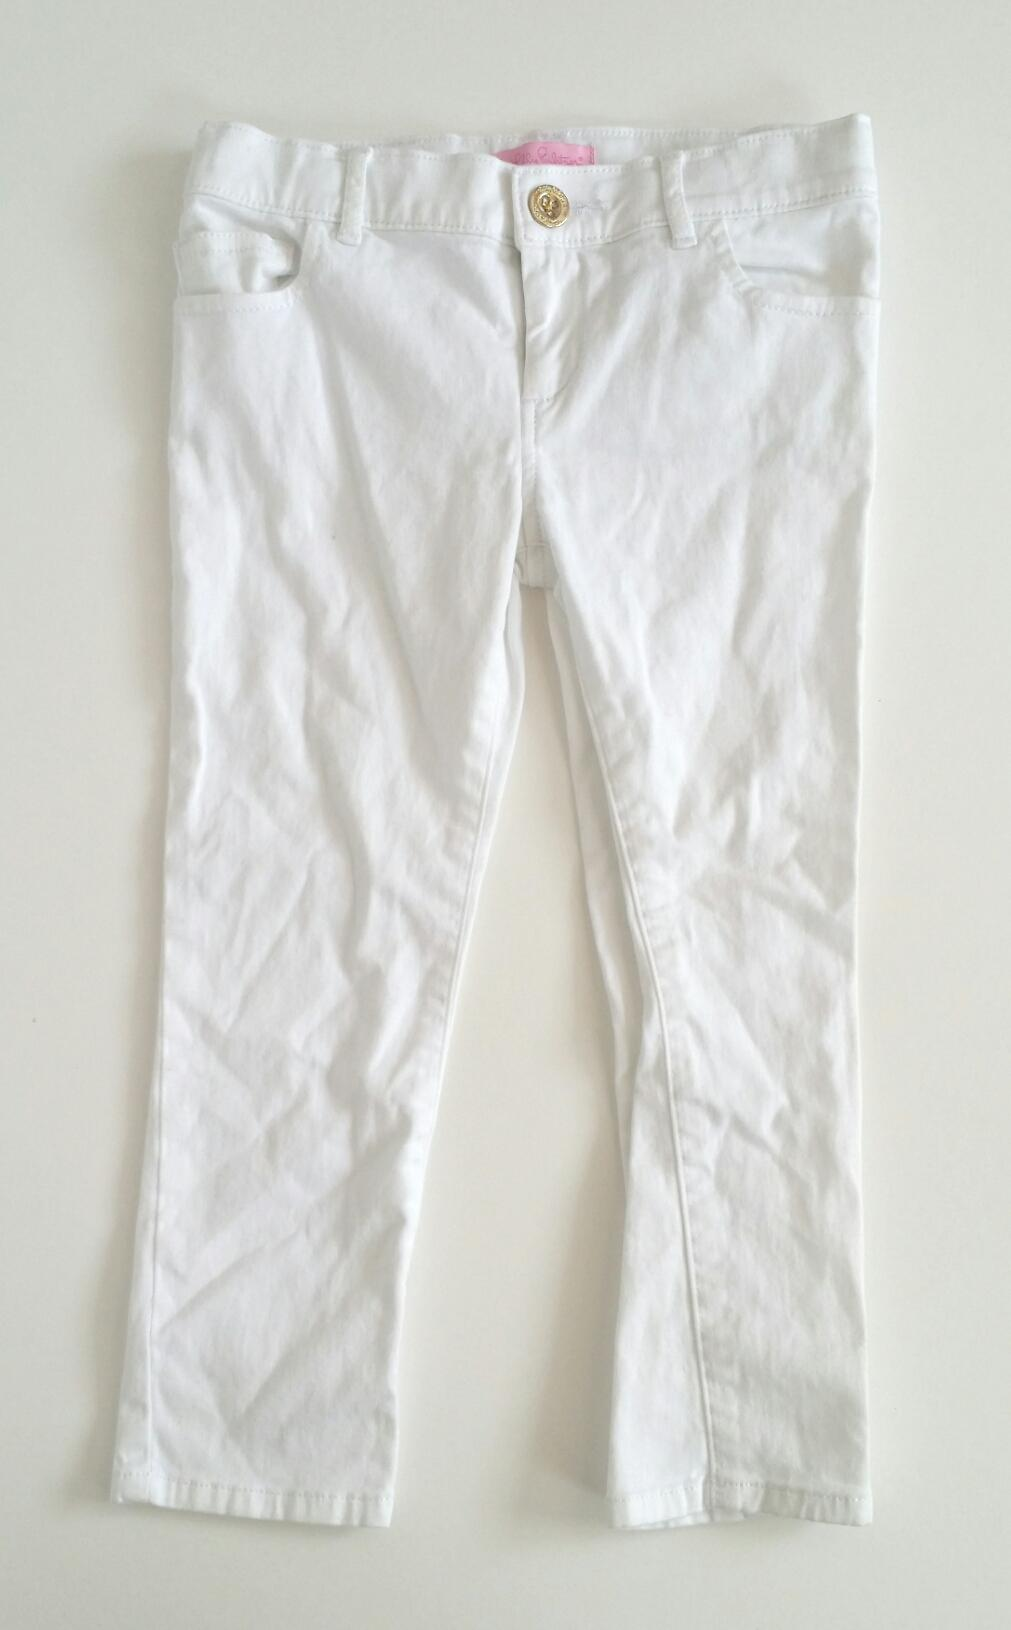 Lilly-Putitzer-4-YEARS-Straight-Leg-Pants_2069309A.jpg